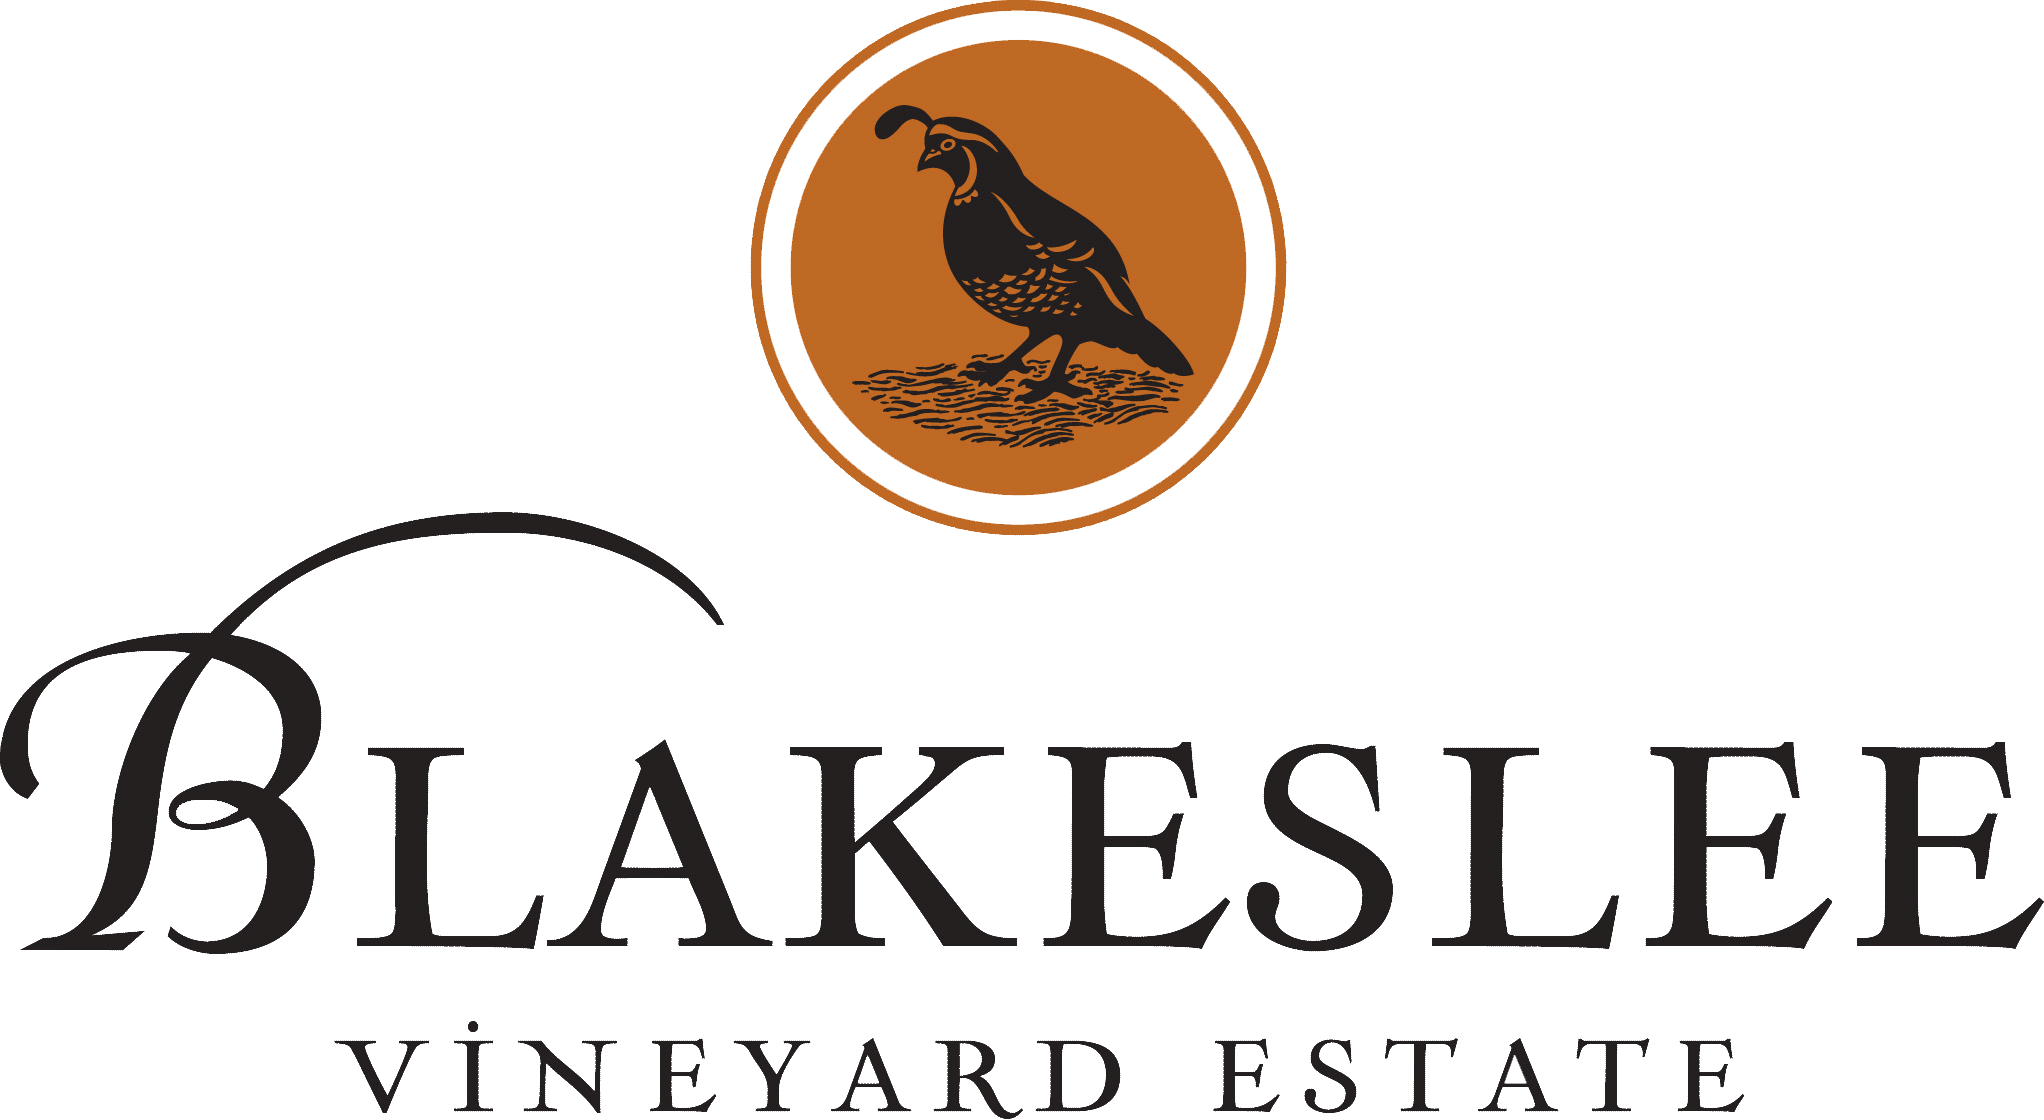 Blakeslee Vineyard Estate Logo